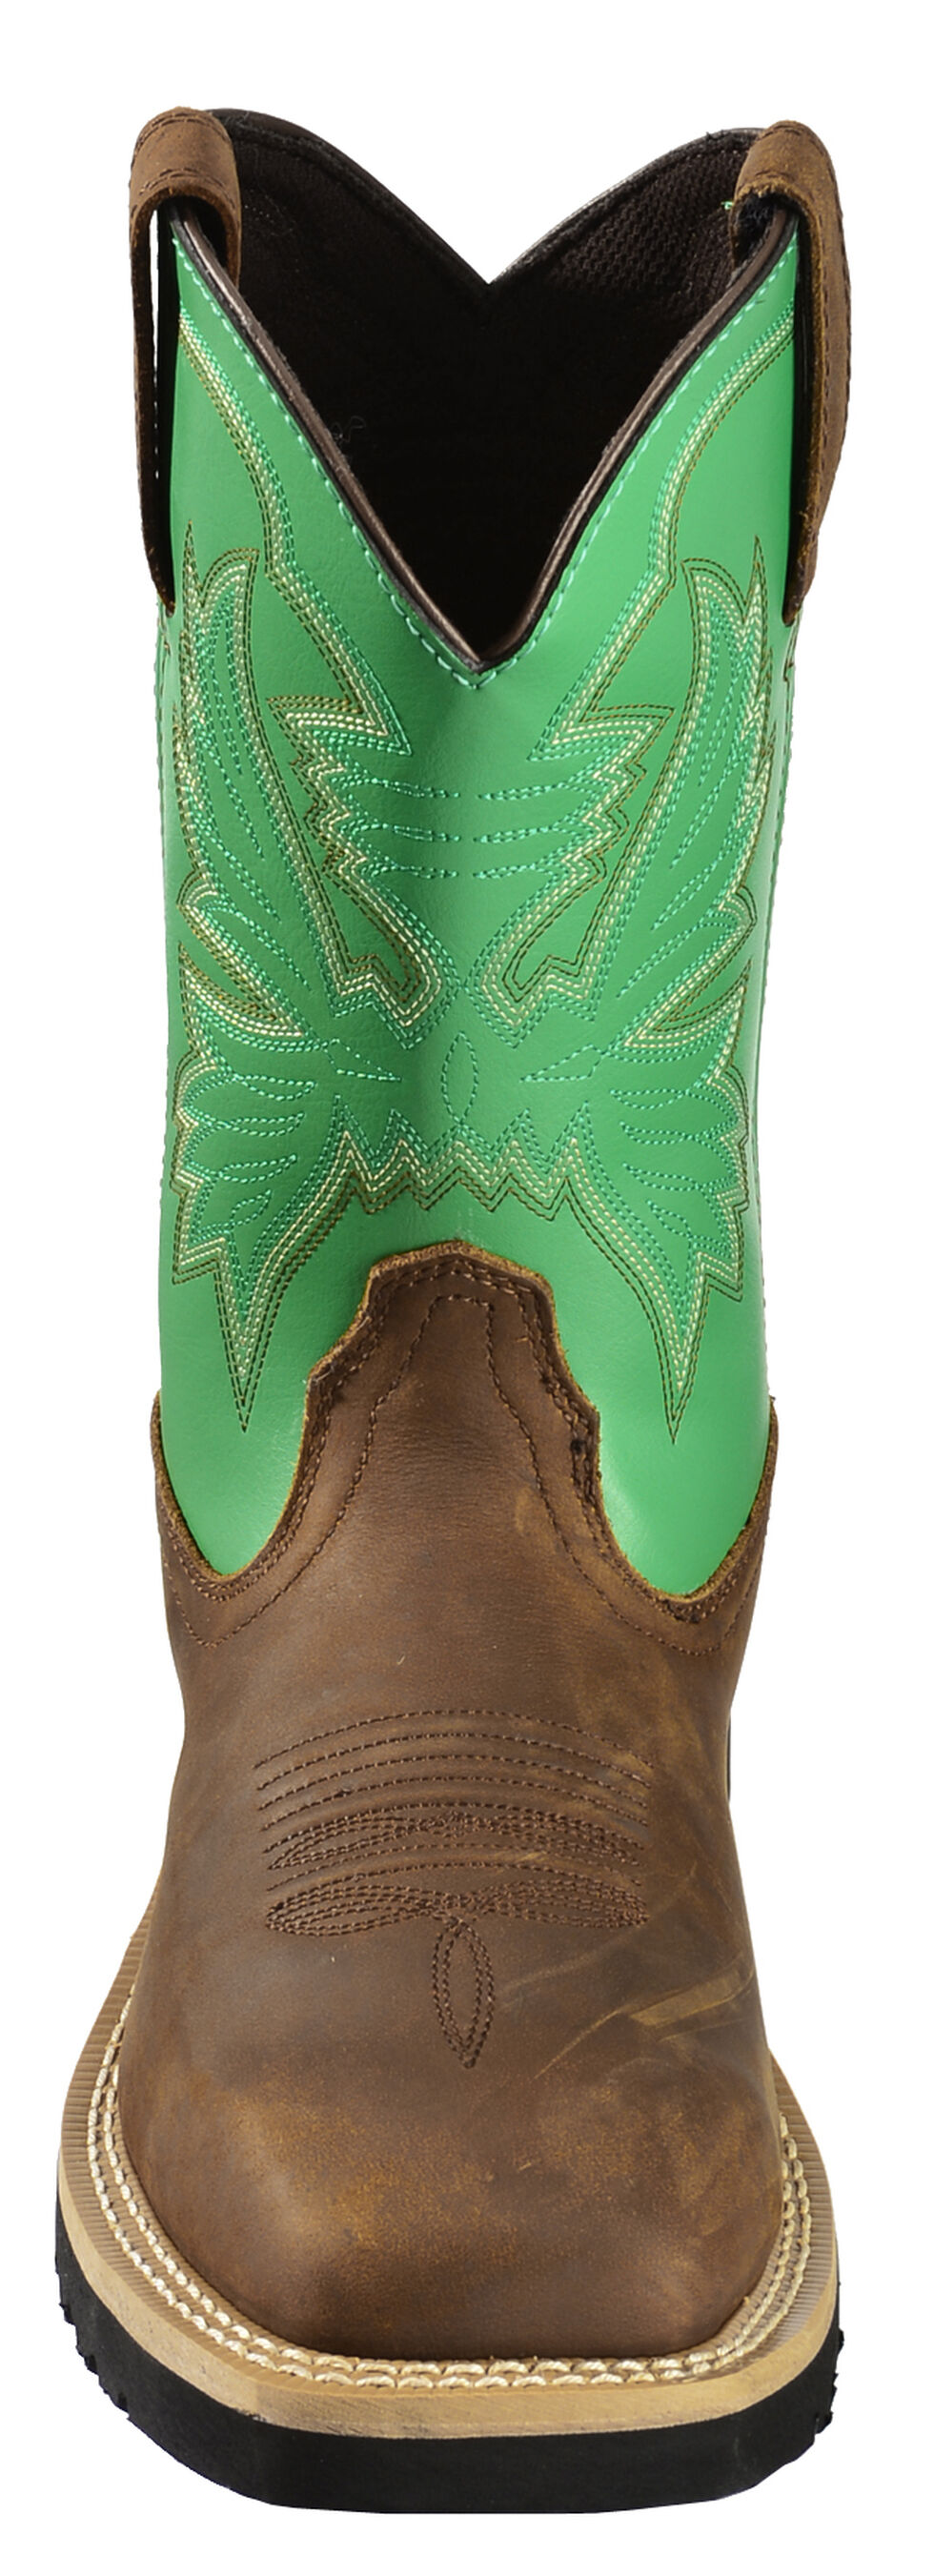 """Cinch Men's Green 10"""" Pull-On Work Boots - Square Toe, Brn Bomber, hi-res"""